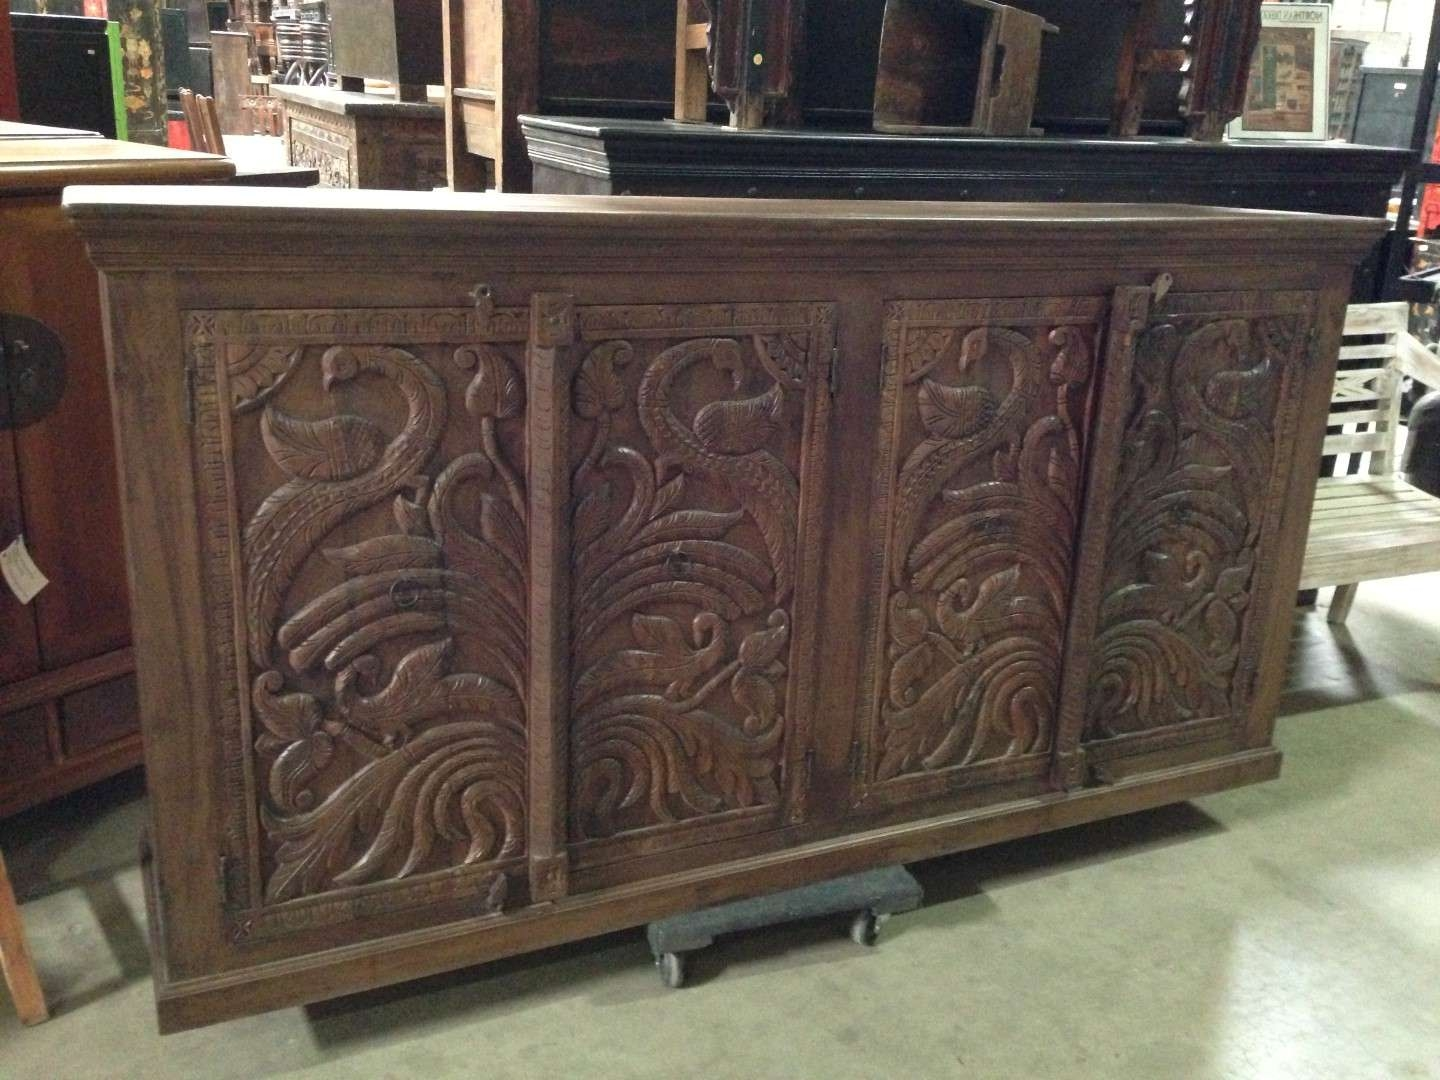 Imported Rustic Sideboards From India, China, Indonesia And Mexico Inside Indian Sideboards Furniture (View 5 of 20)